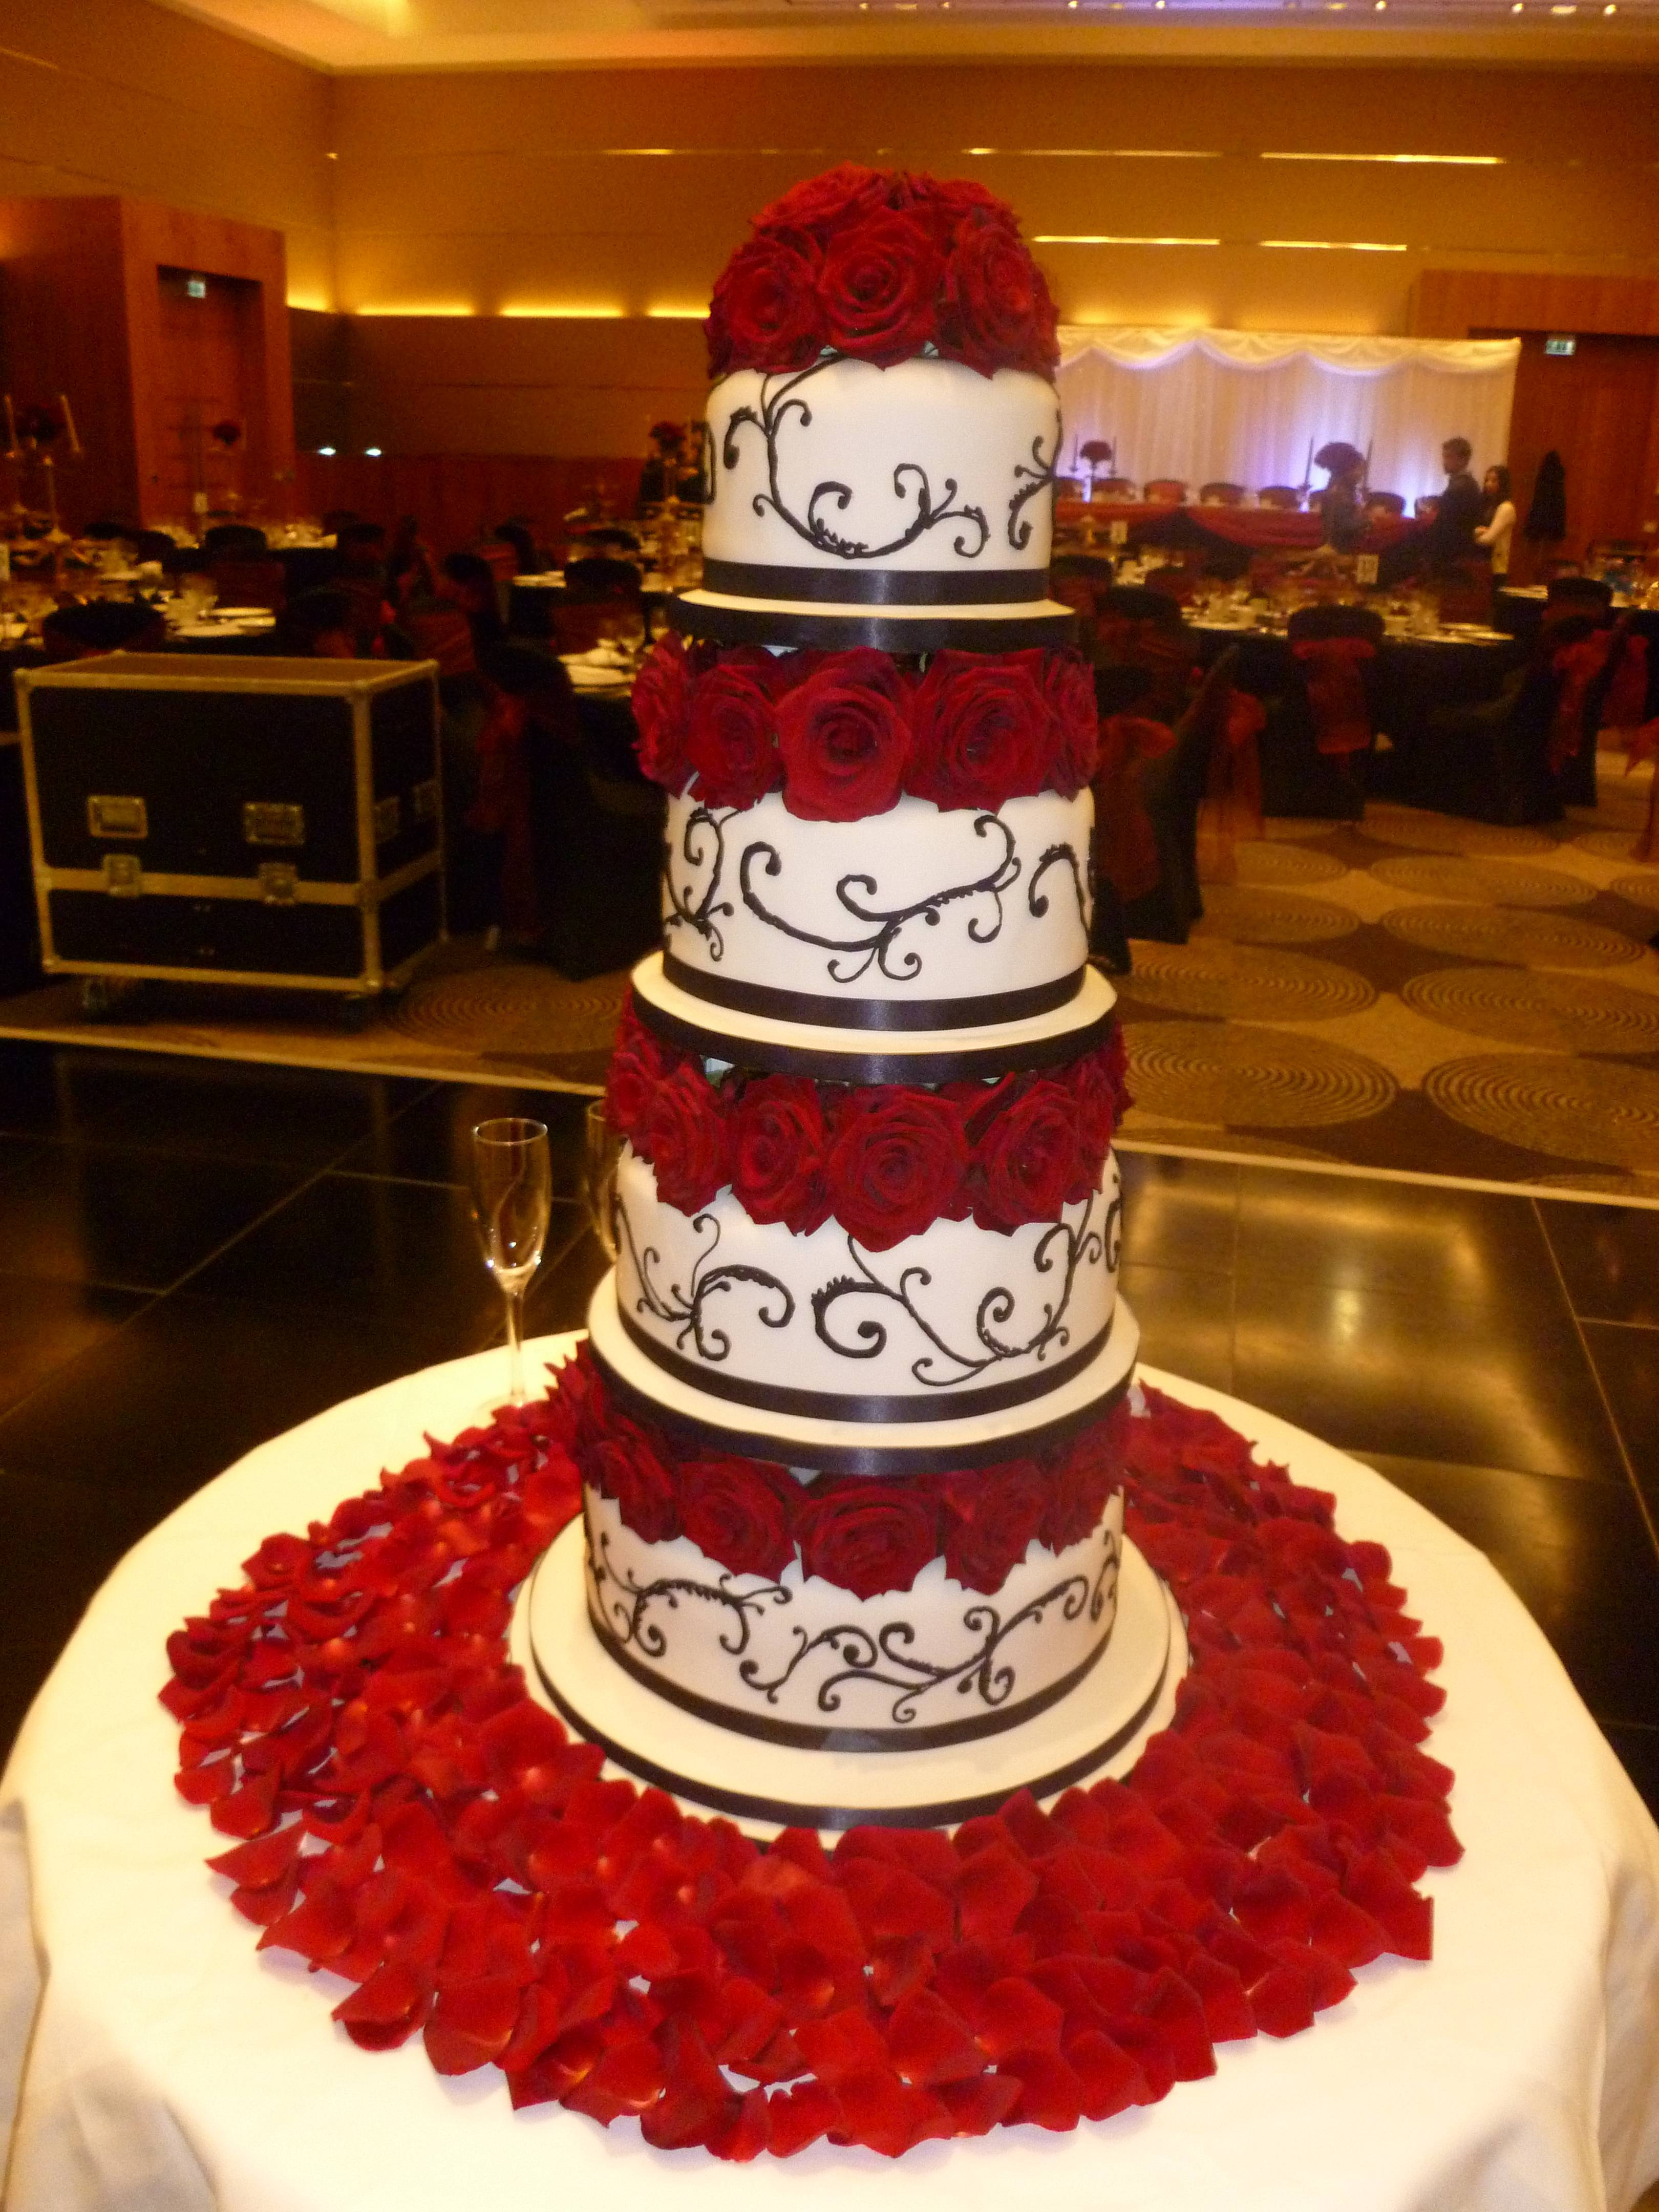 TOWER WEDDING CAKES Wedding cake idea with the red and